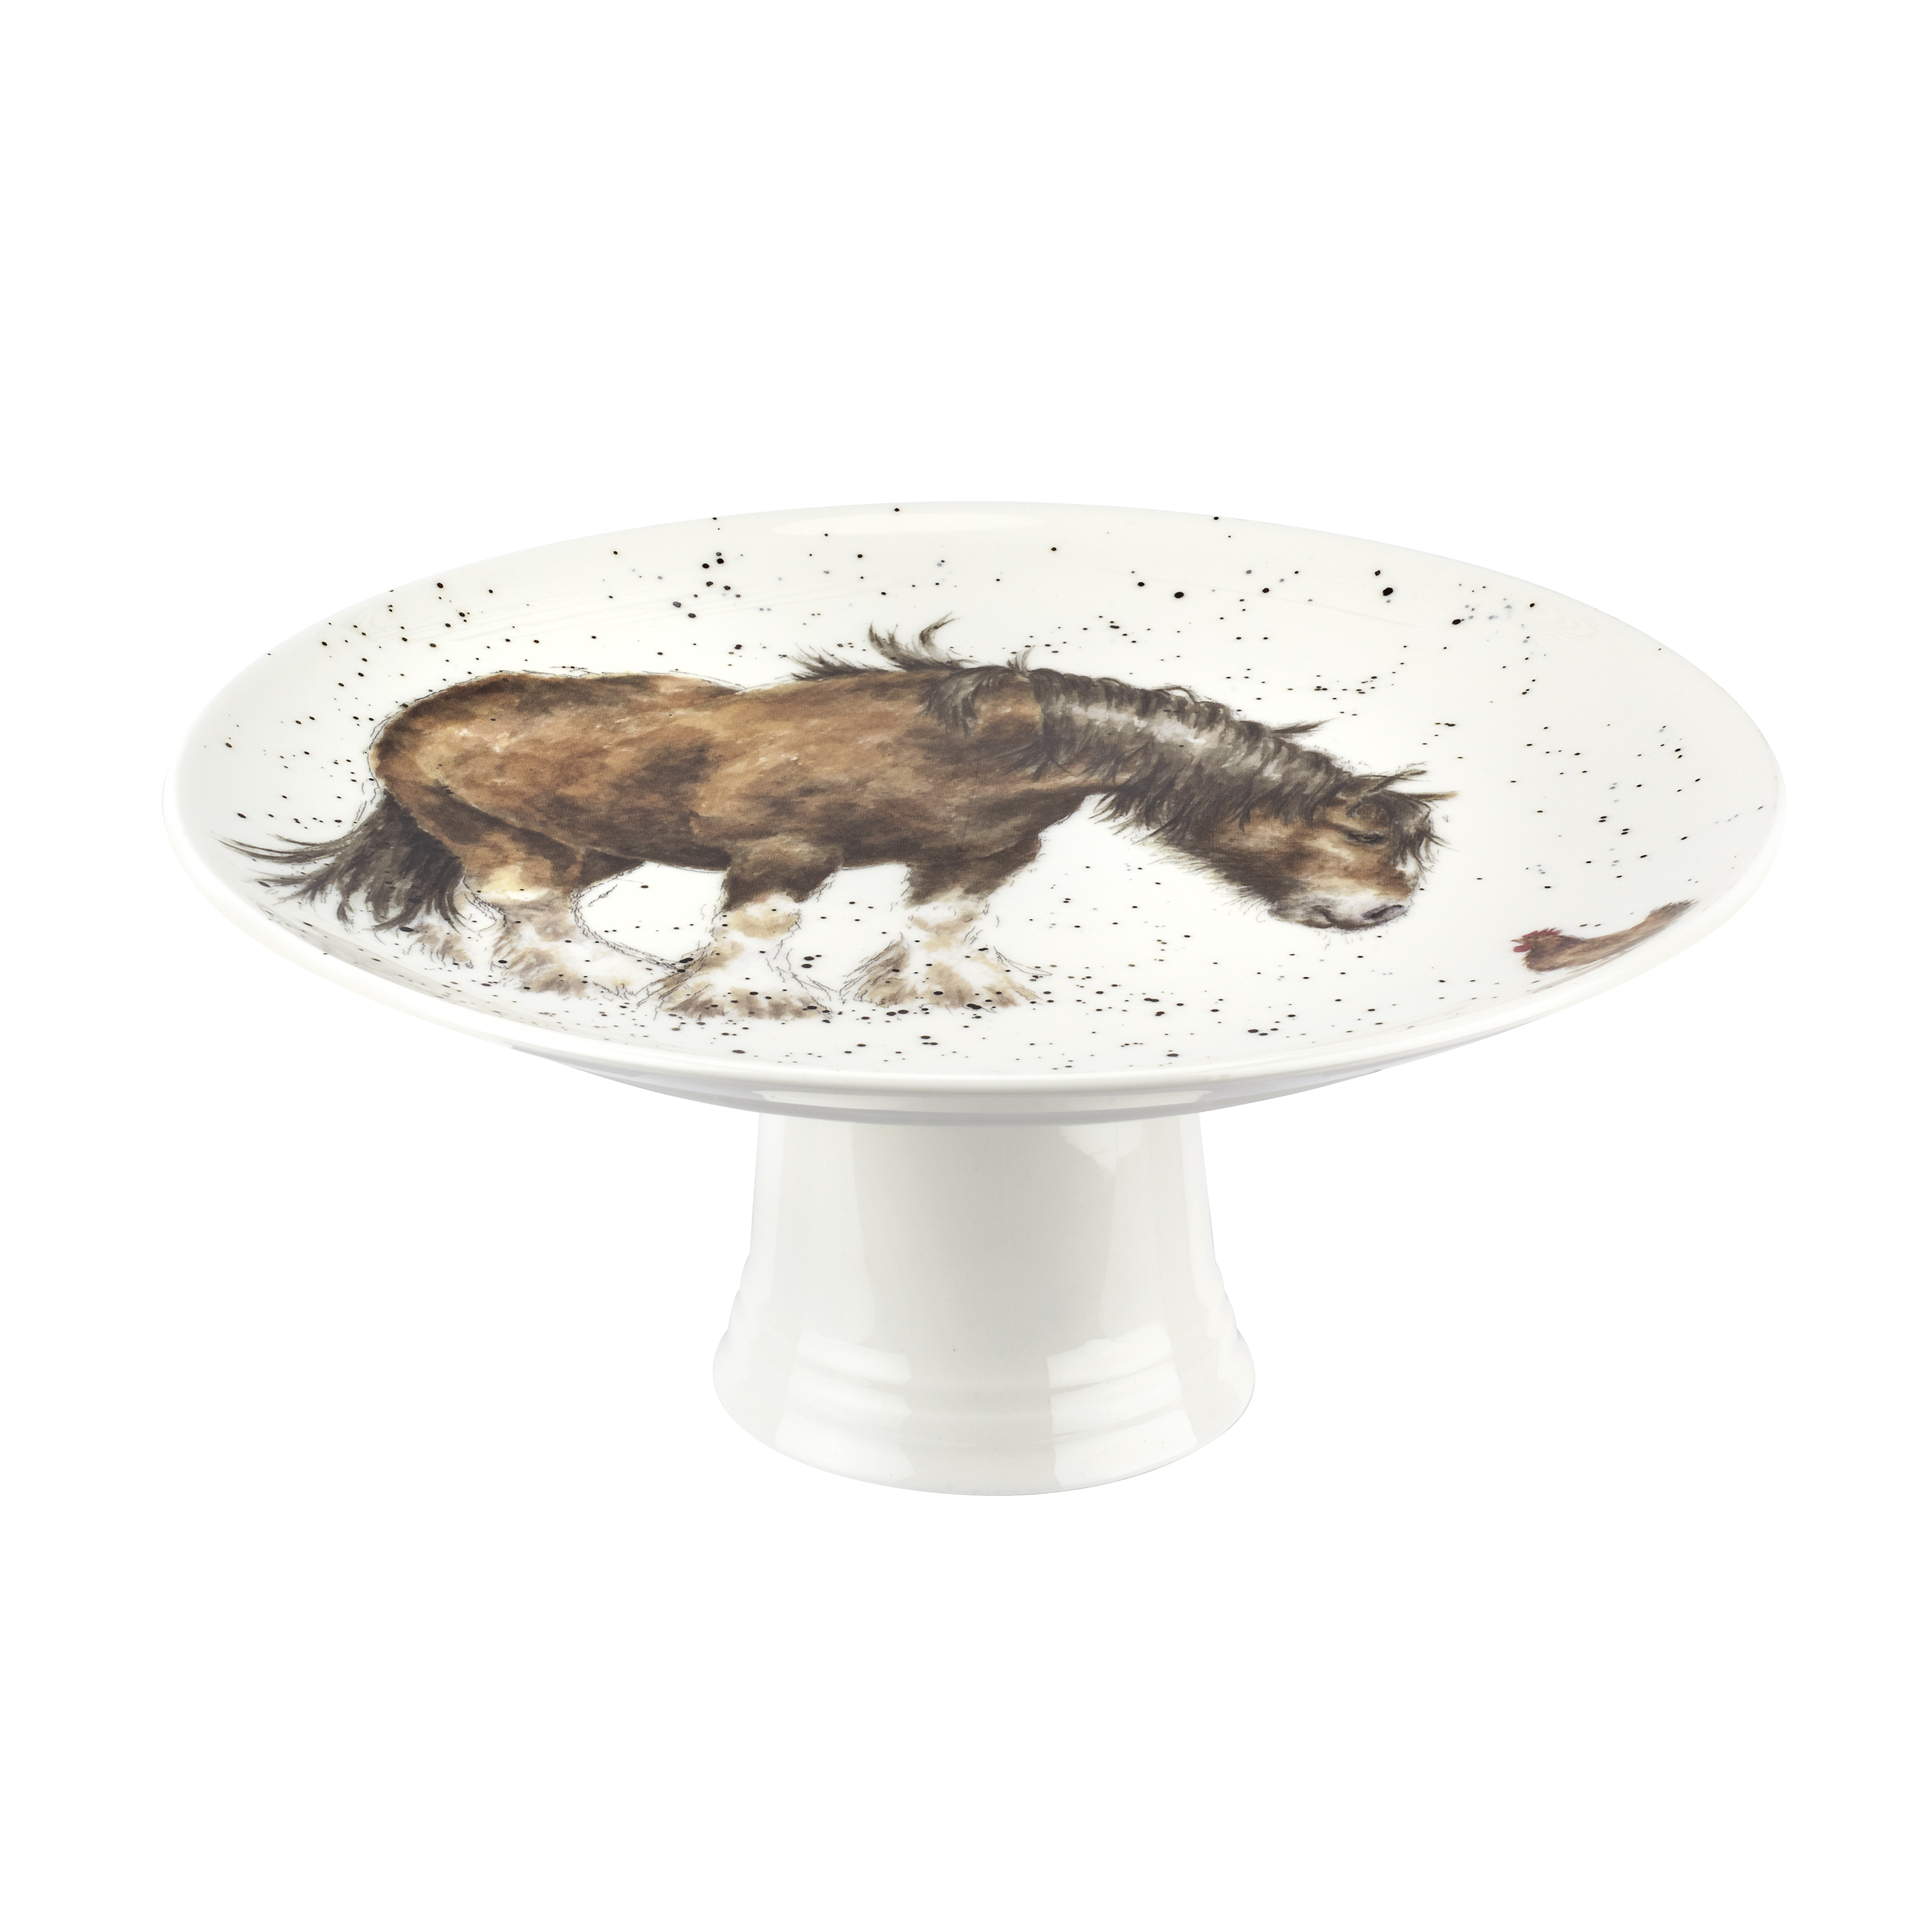 Royal Worcester Wrendale Designs 9.75 Inch Footed Cake Plate (Farmyard Friends) image number 1